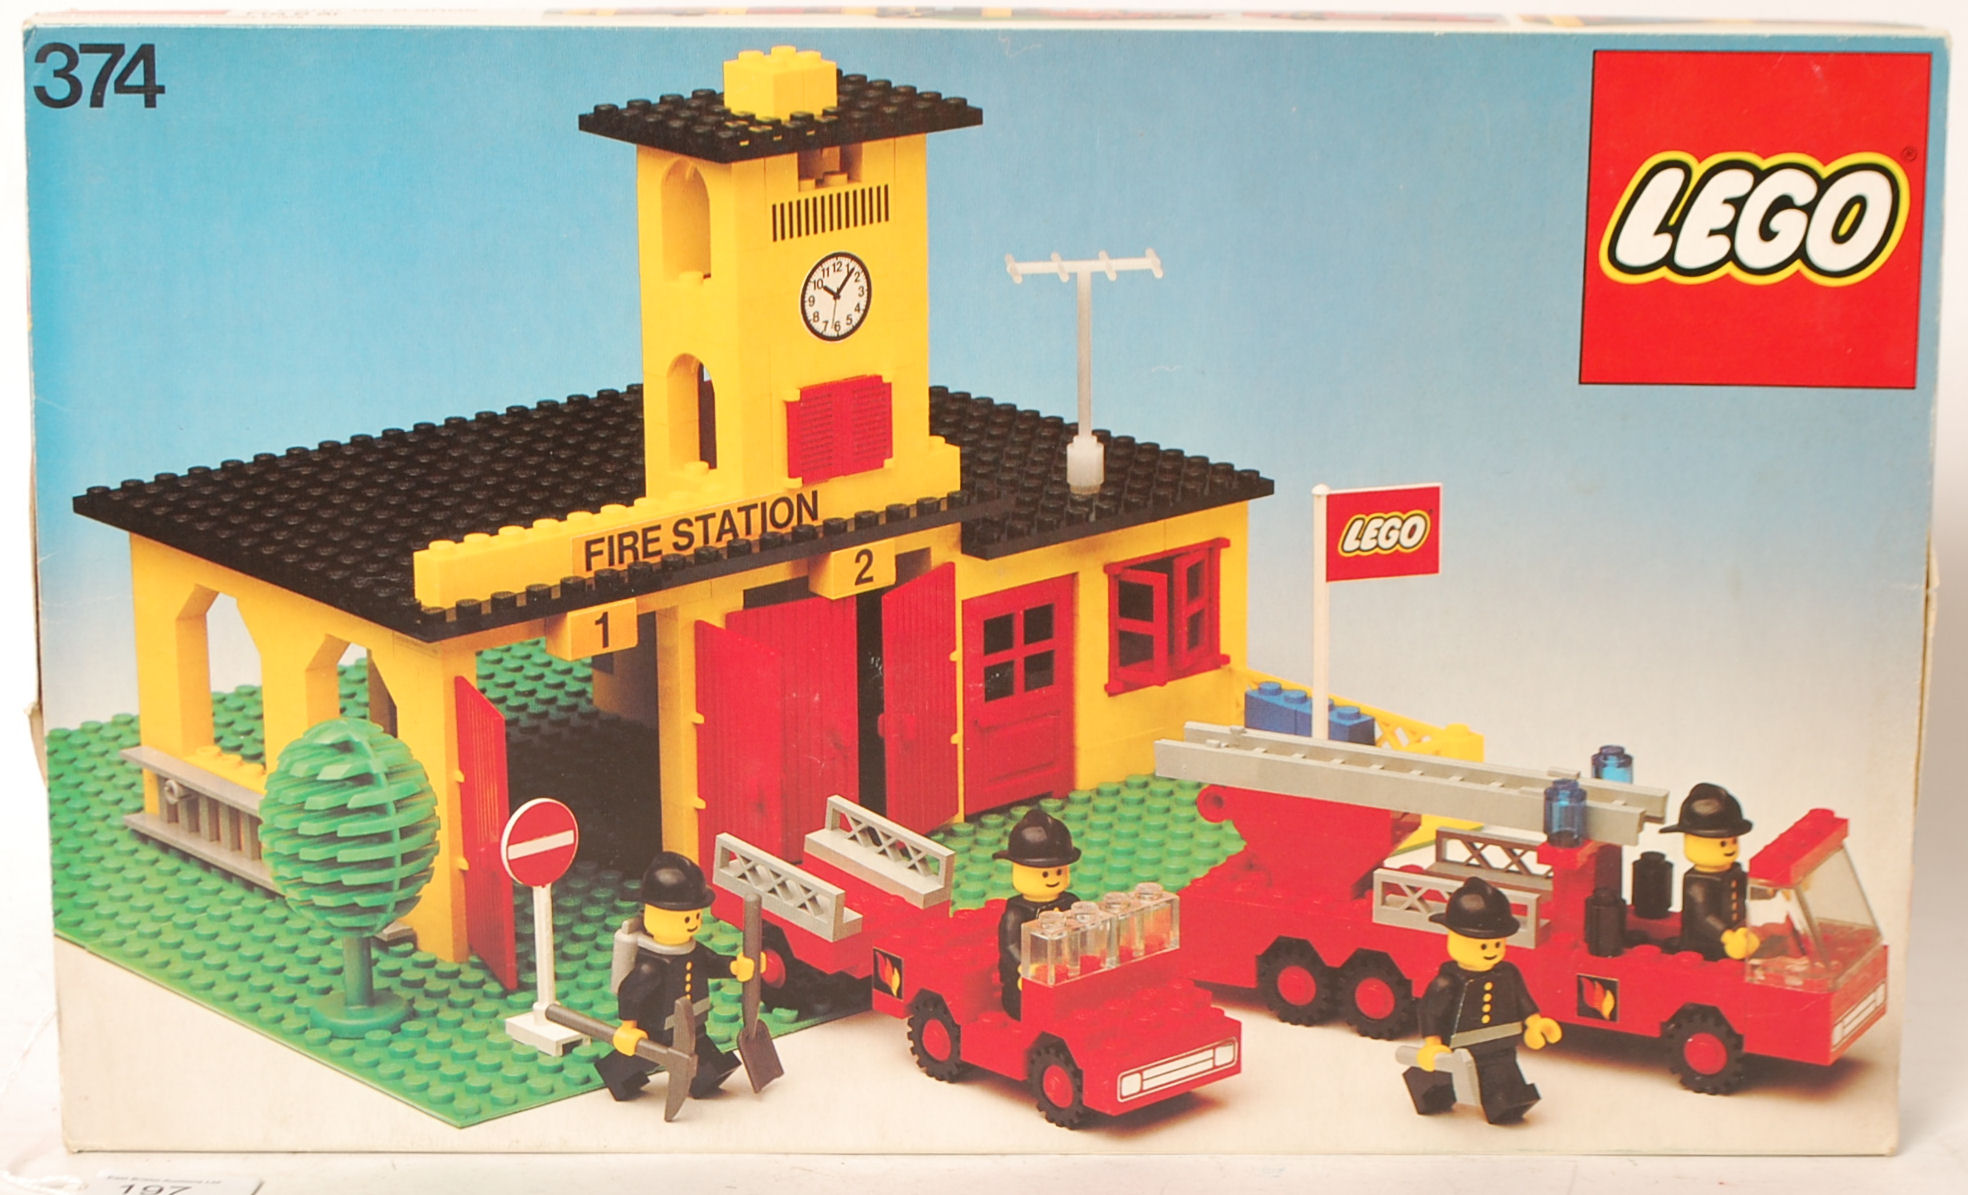 Lego An Original Vintage Lego Town Fire Station 374 Boxed Set With